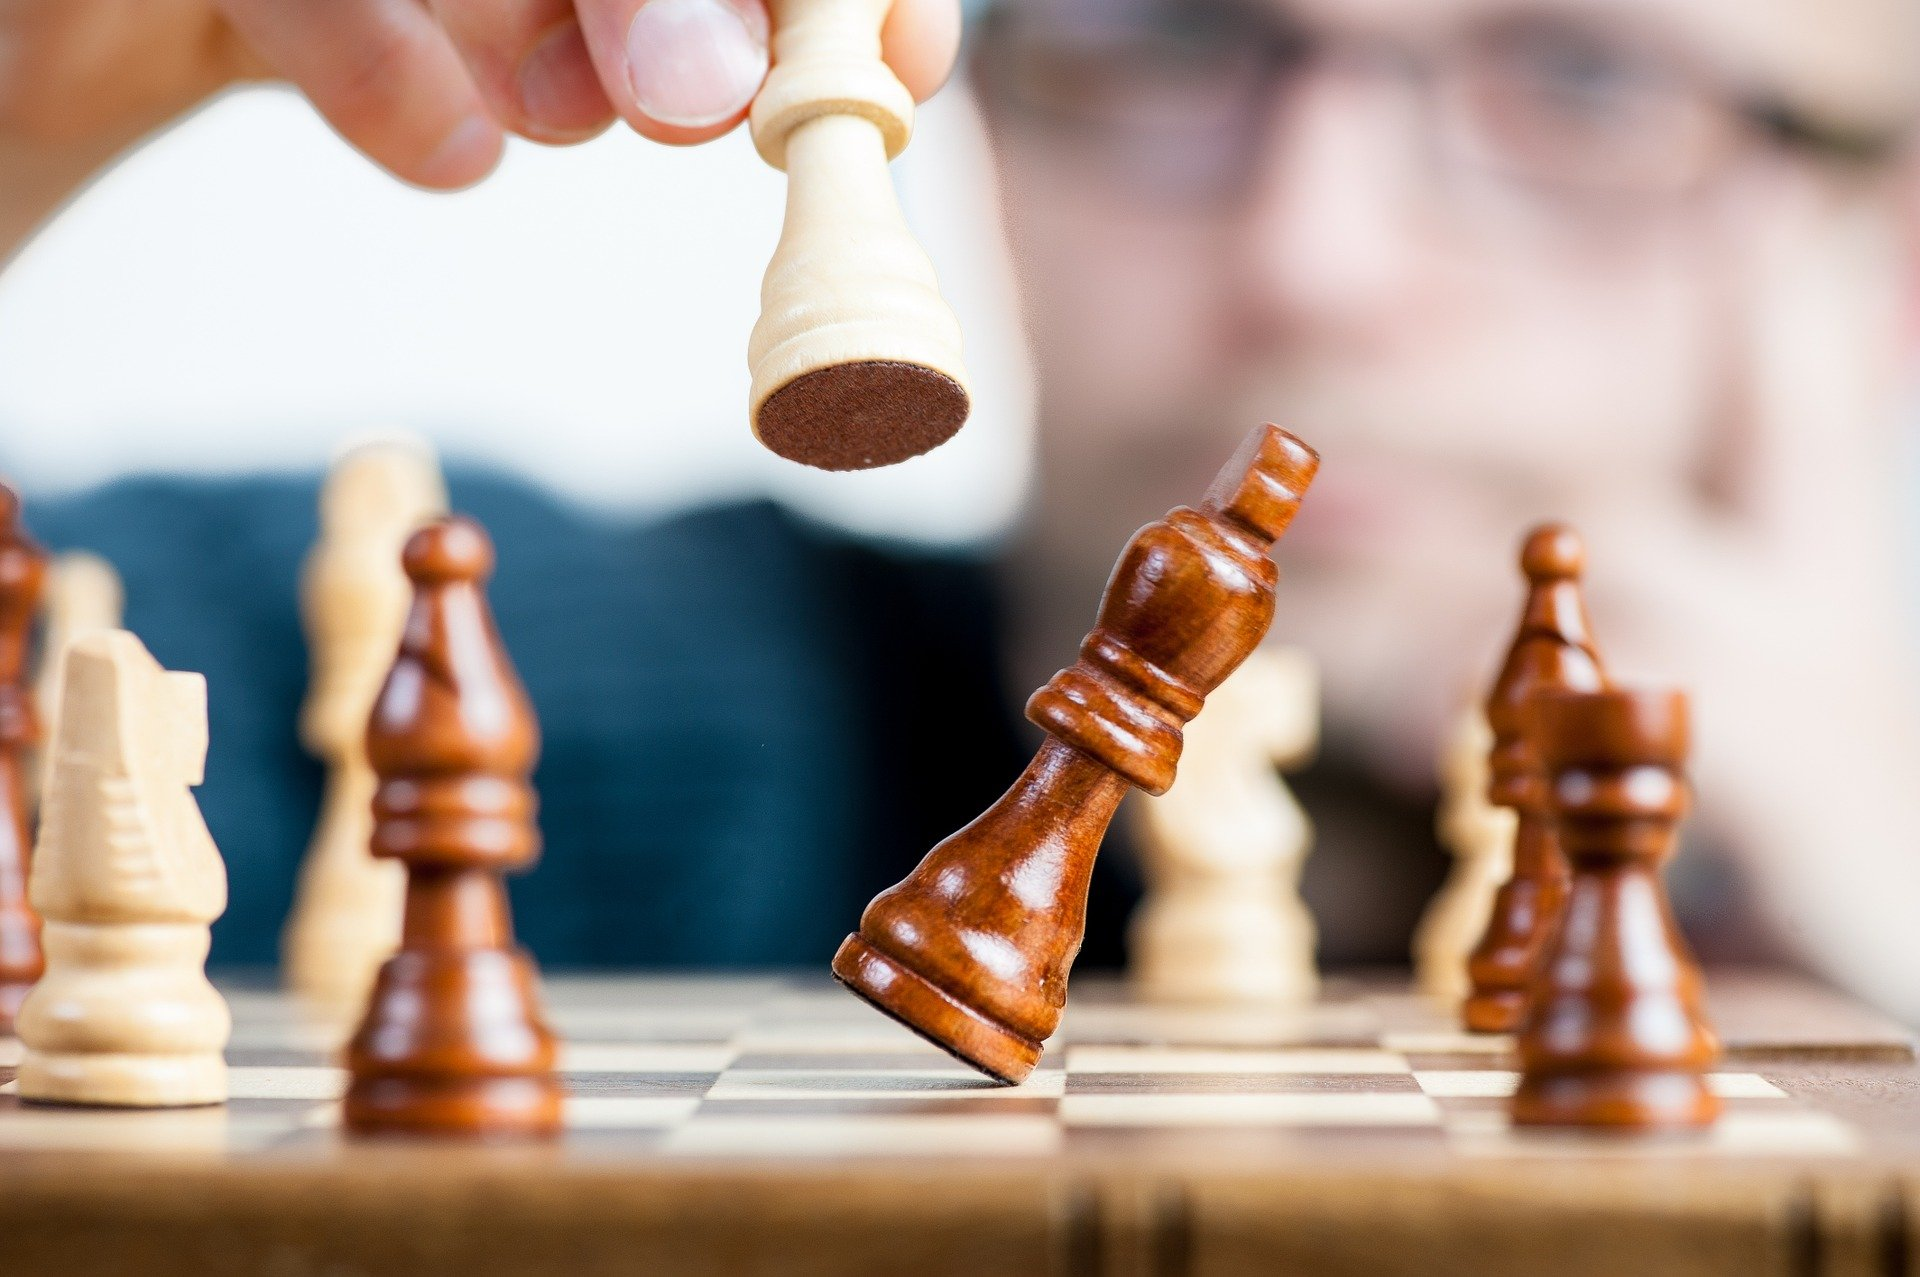 image of a person putting over the king on a brown and white chess board